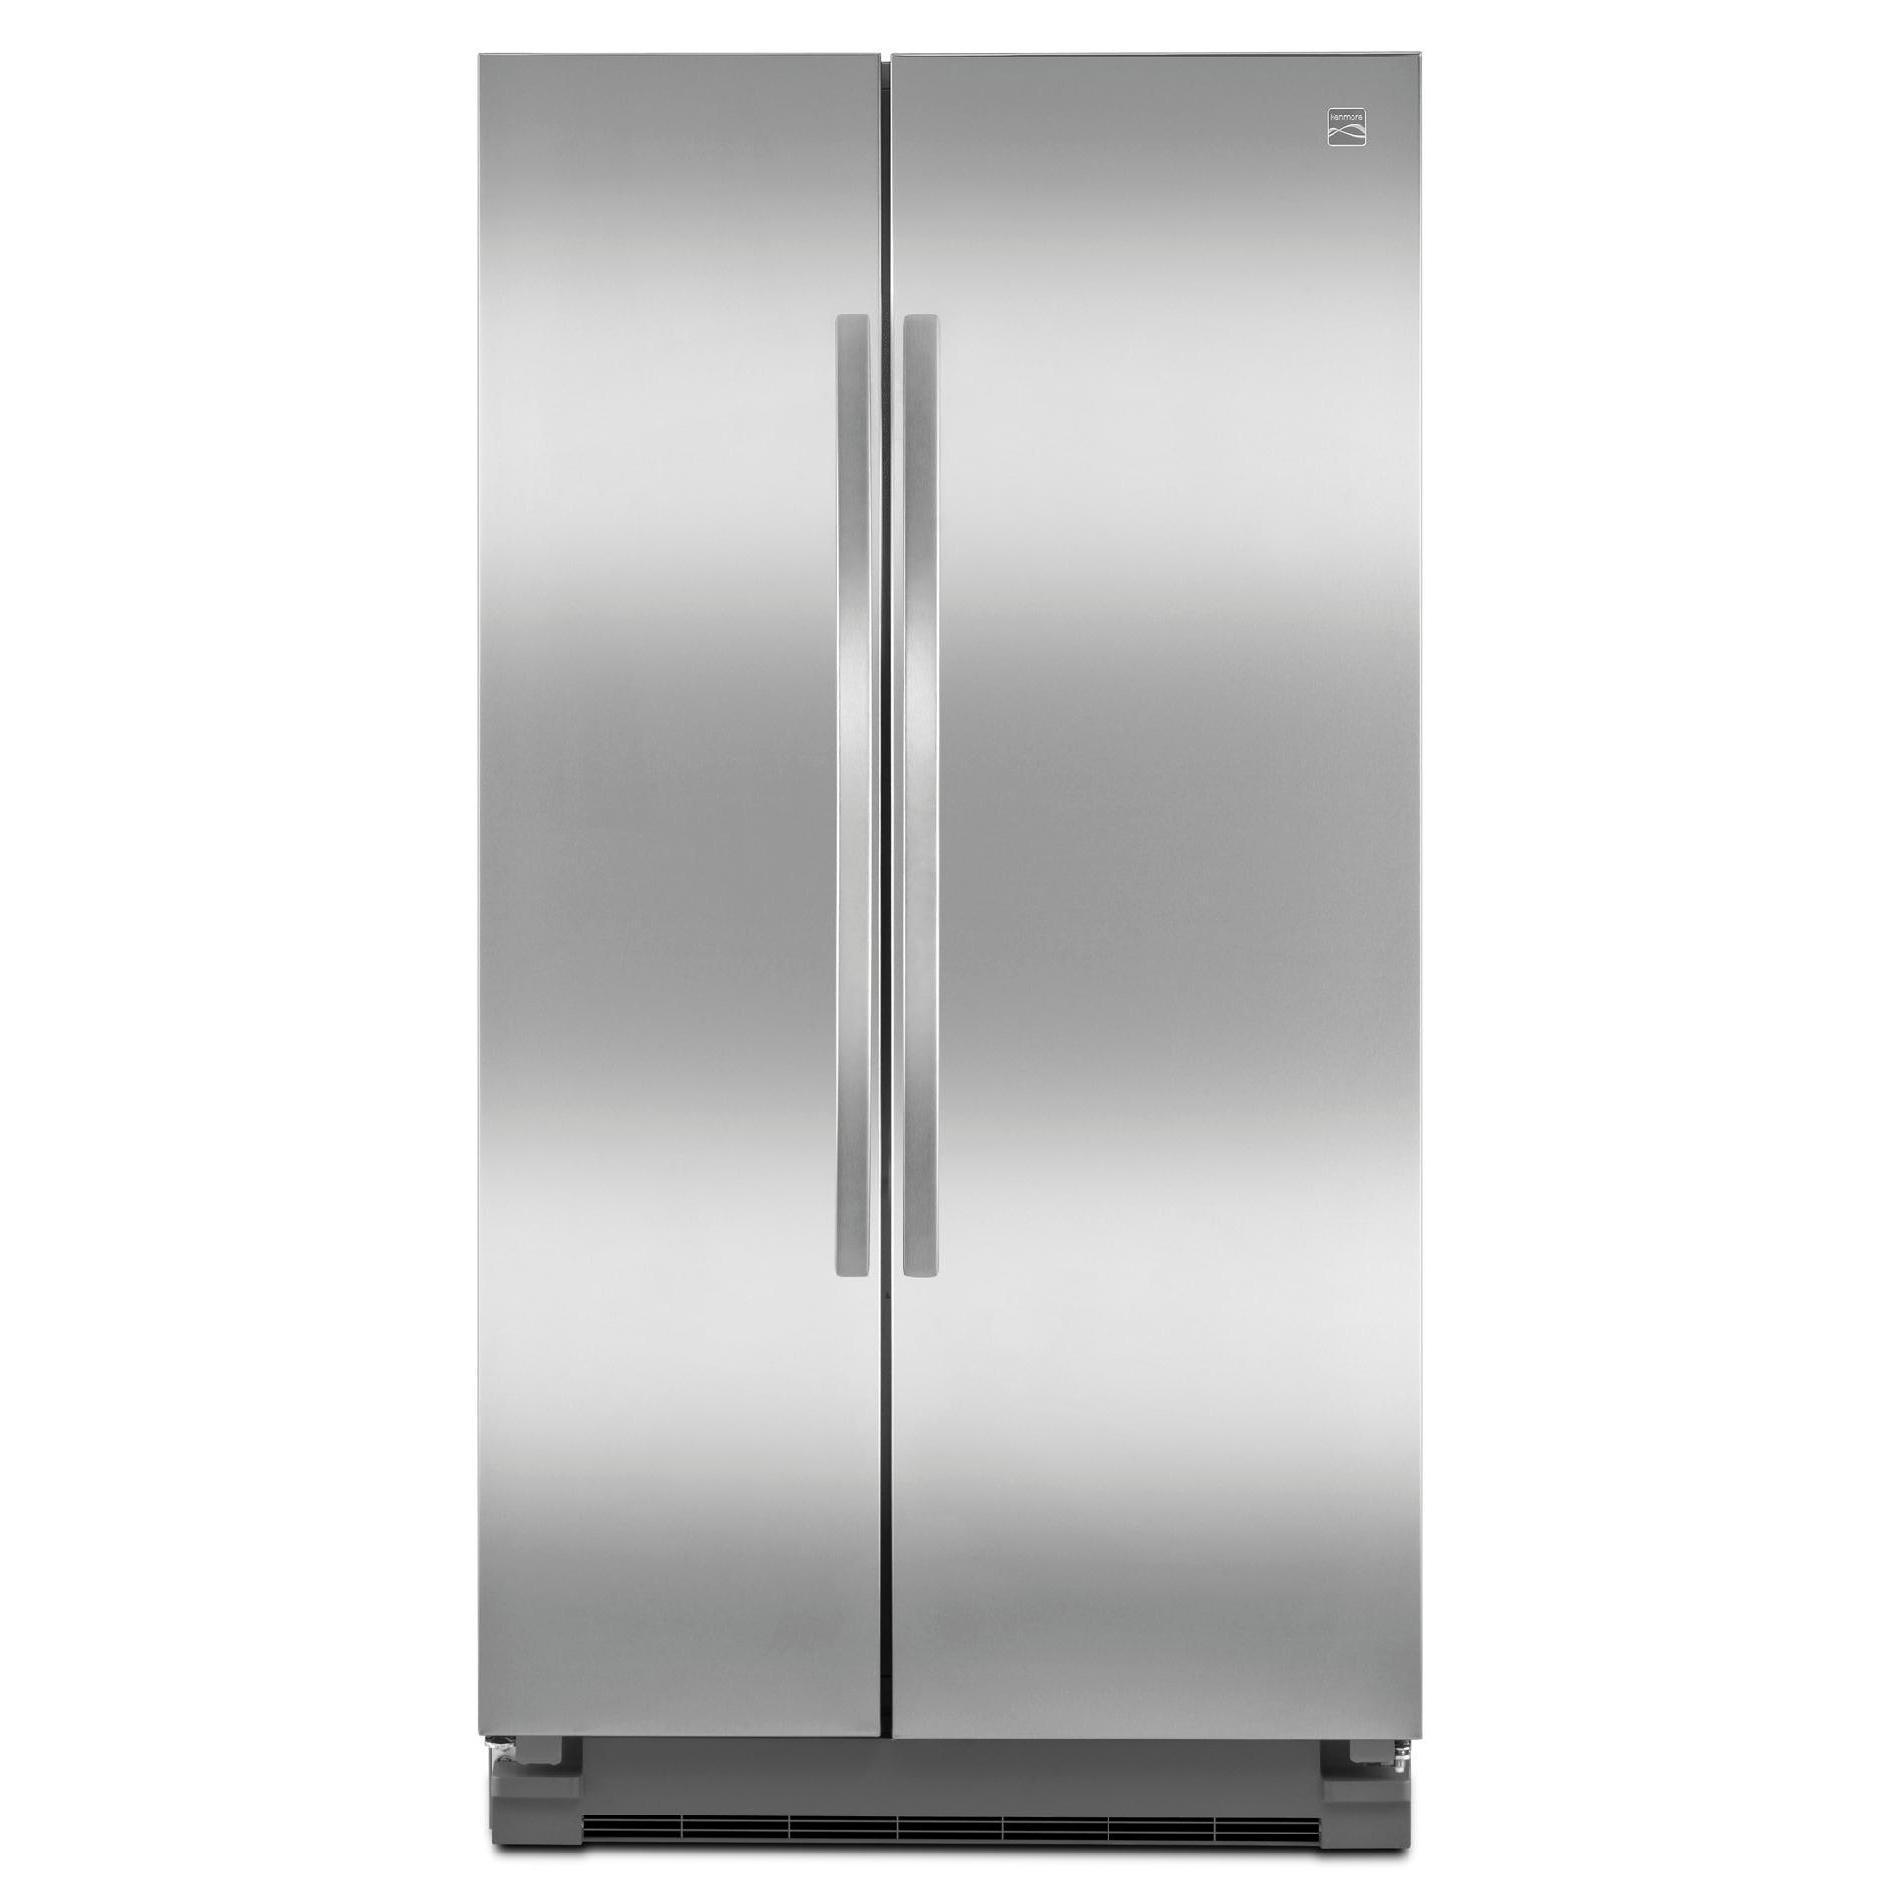 Kenmore 41153 25 cu. ft. Side-by-Side Refrigerator - Stainless Steel